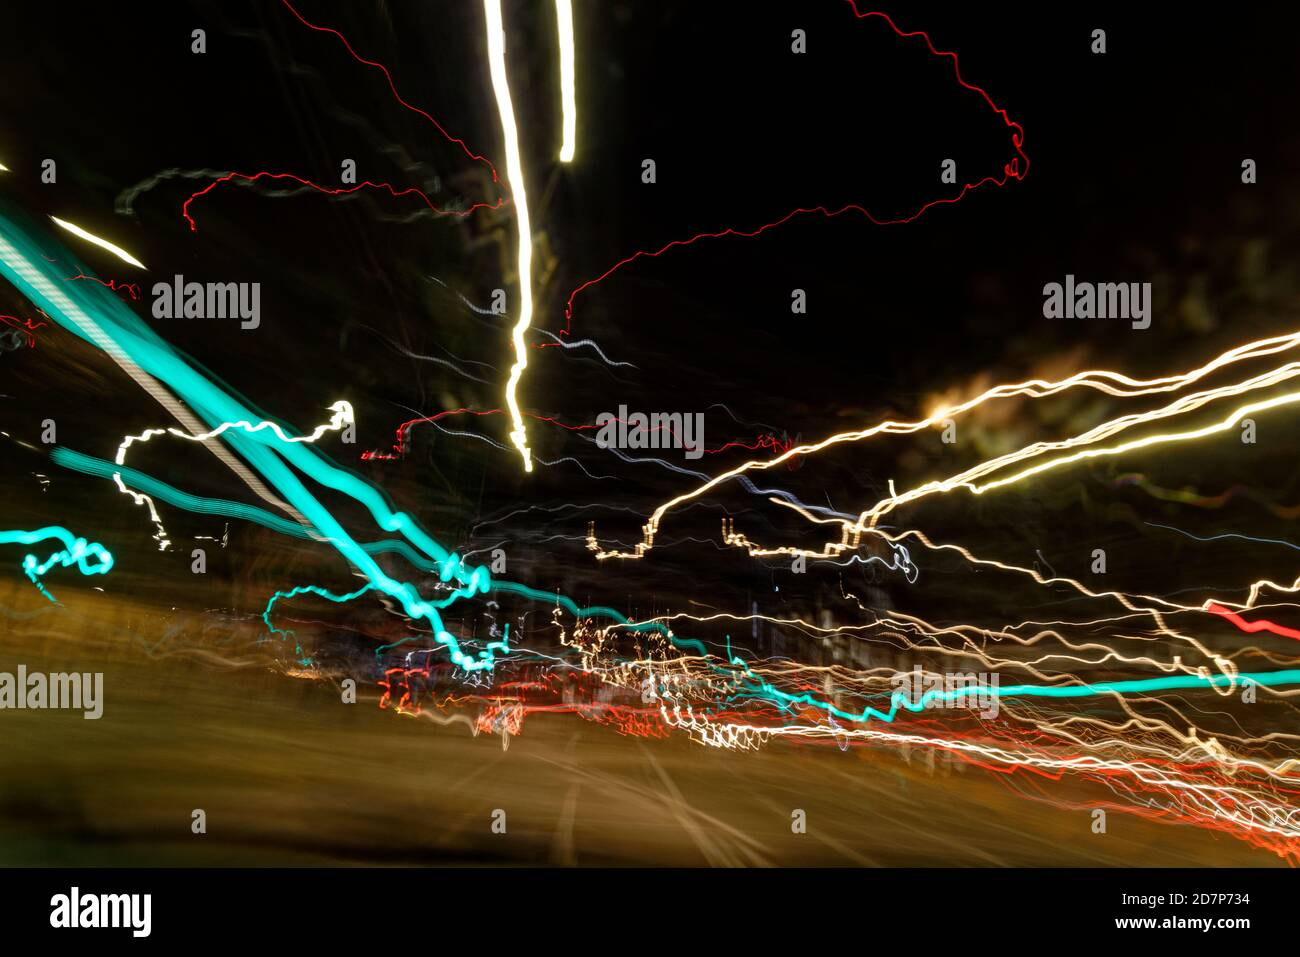 Long exposure light trails as abstract urban background. Different light trails of multicolored street lanterns and passing cars scattering in the dar Stock Photo